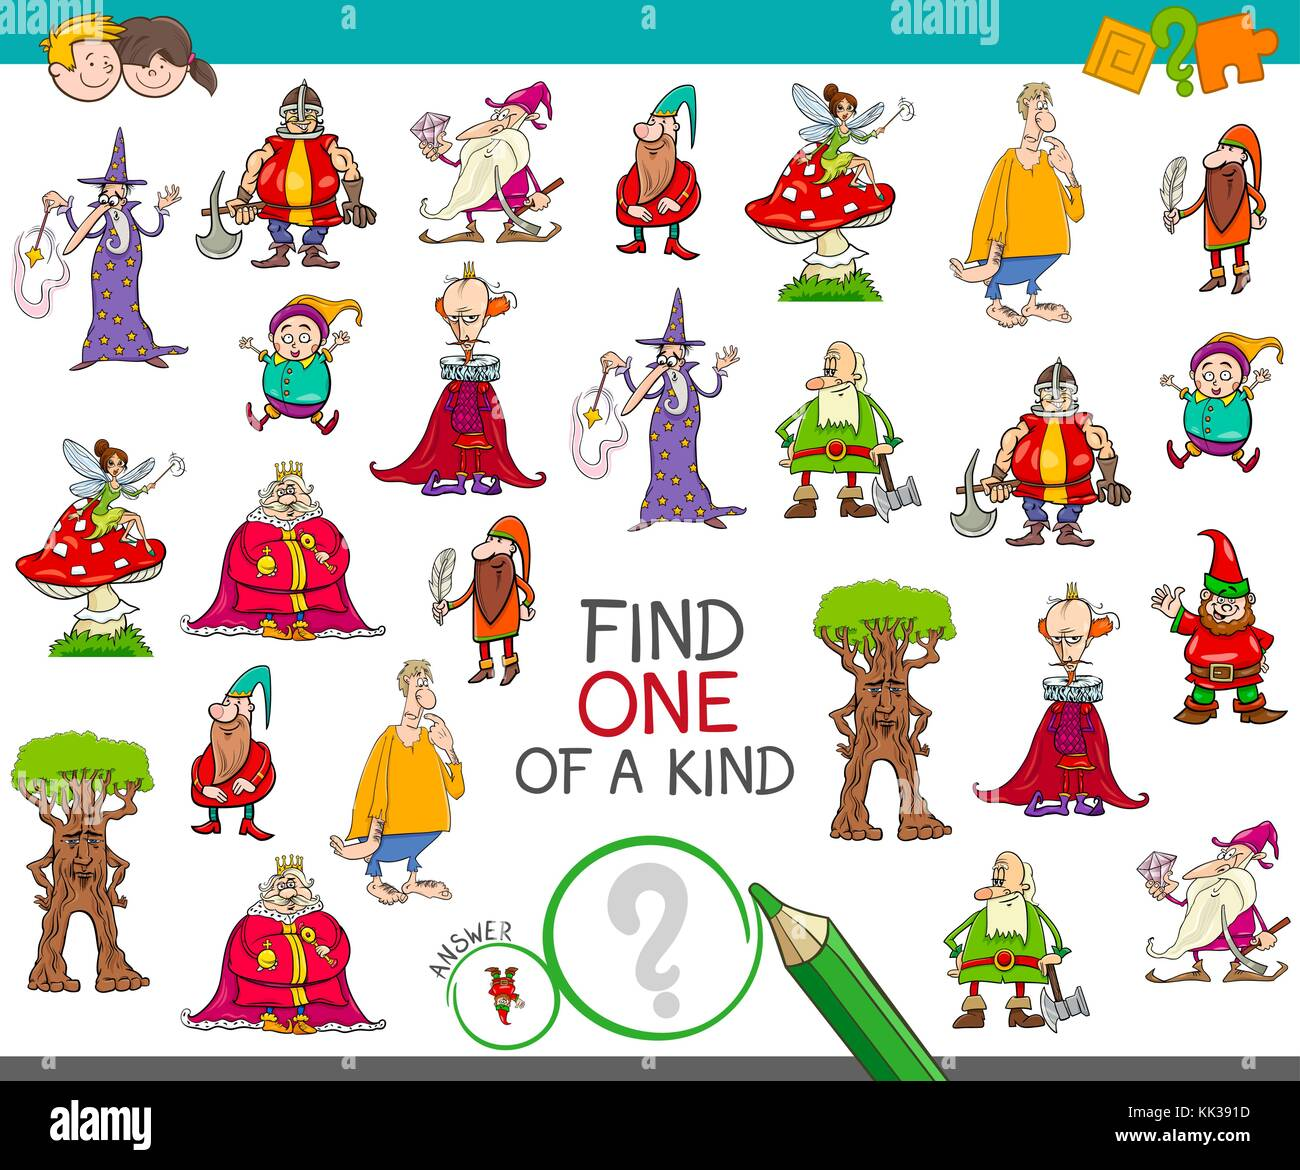 Cartoon Illustration of Find One of a Kind Educational Activity Game for Children with Fantasy Characters Stock Vector